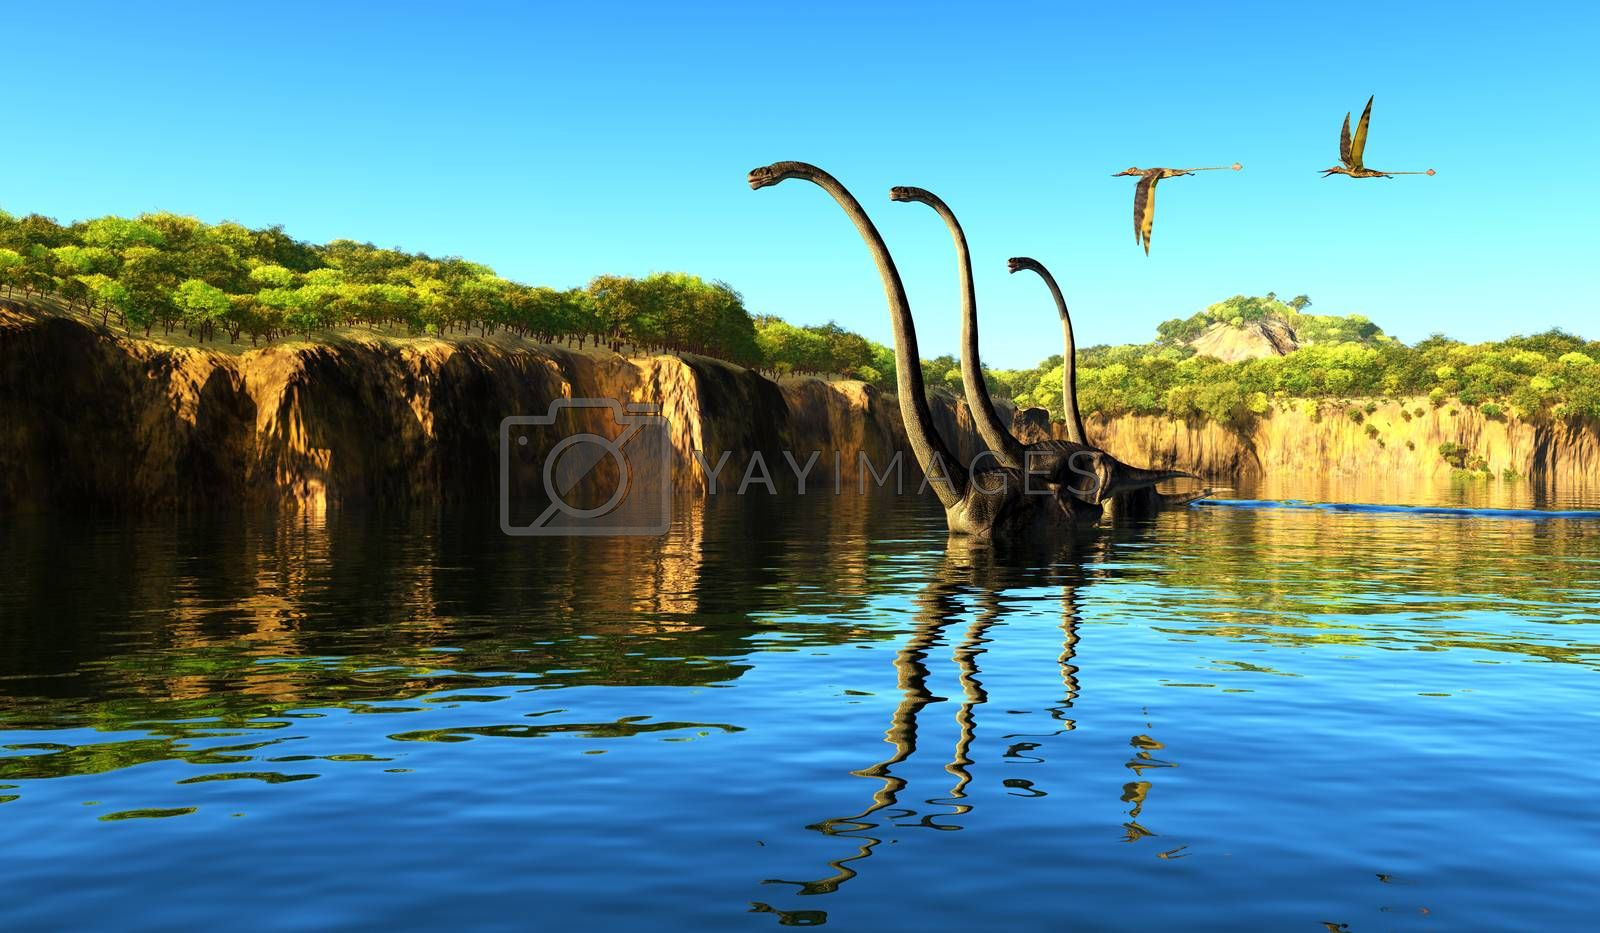 Omeisaurus dinosaurs wade through a river to munch on tree foliage as Rhamphorhynchus reptiles fly nearby.